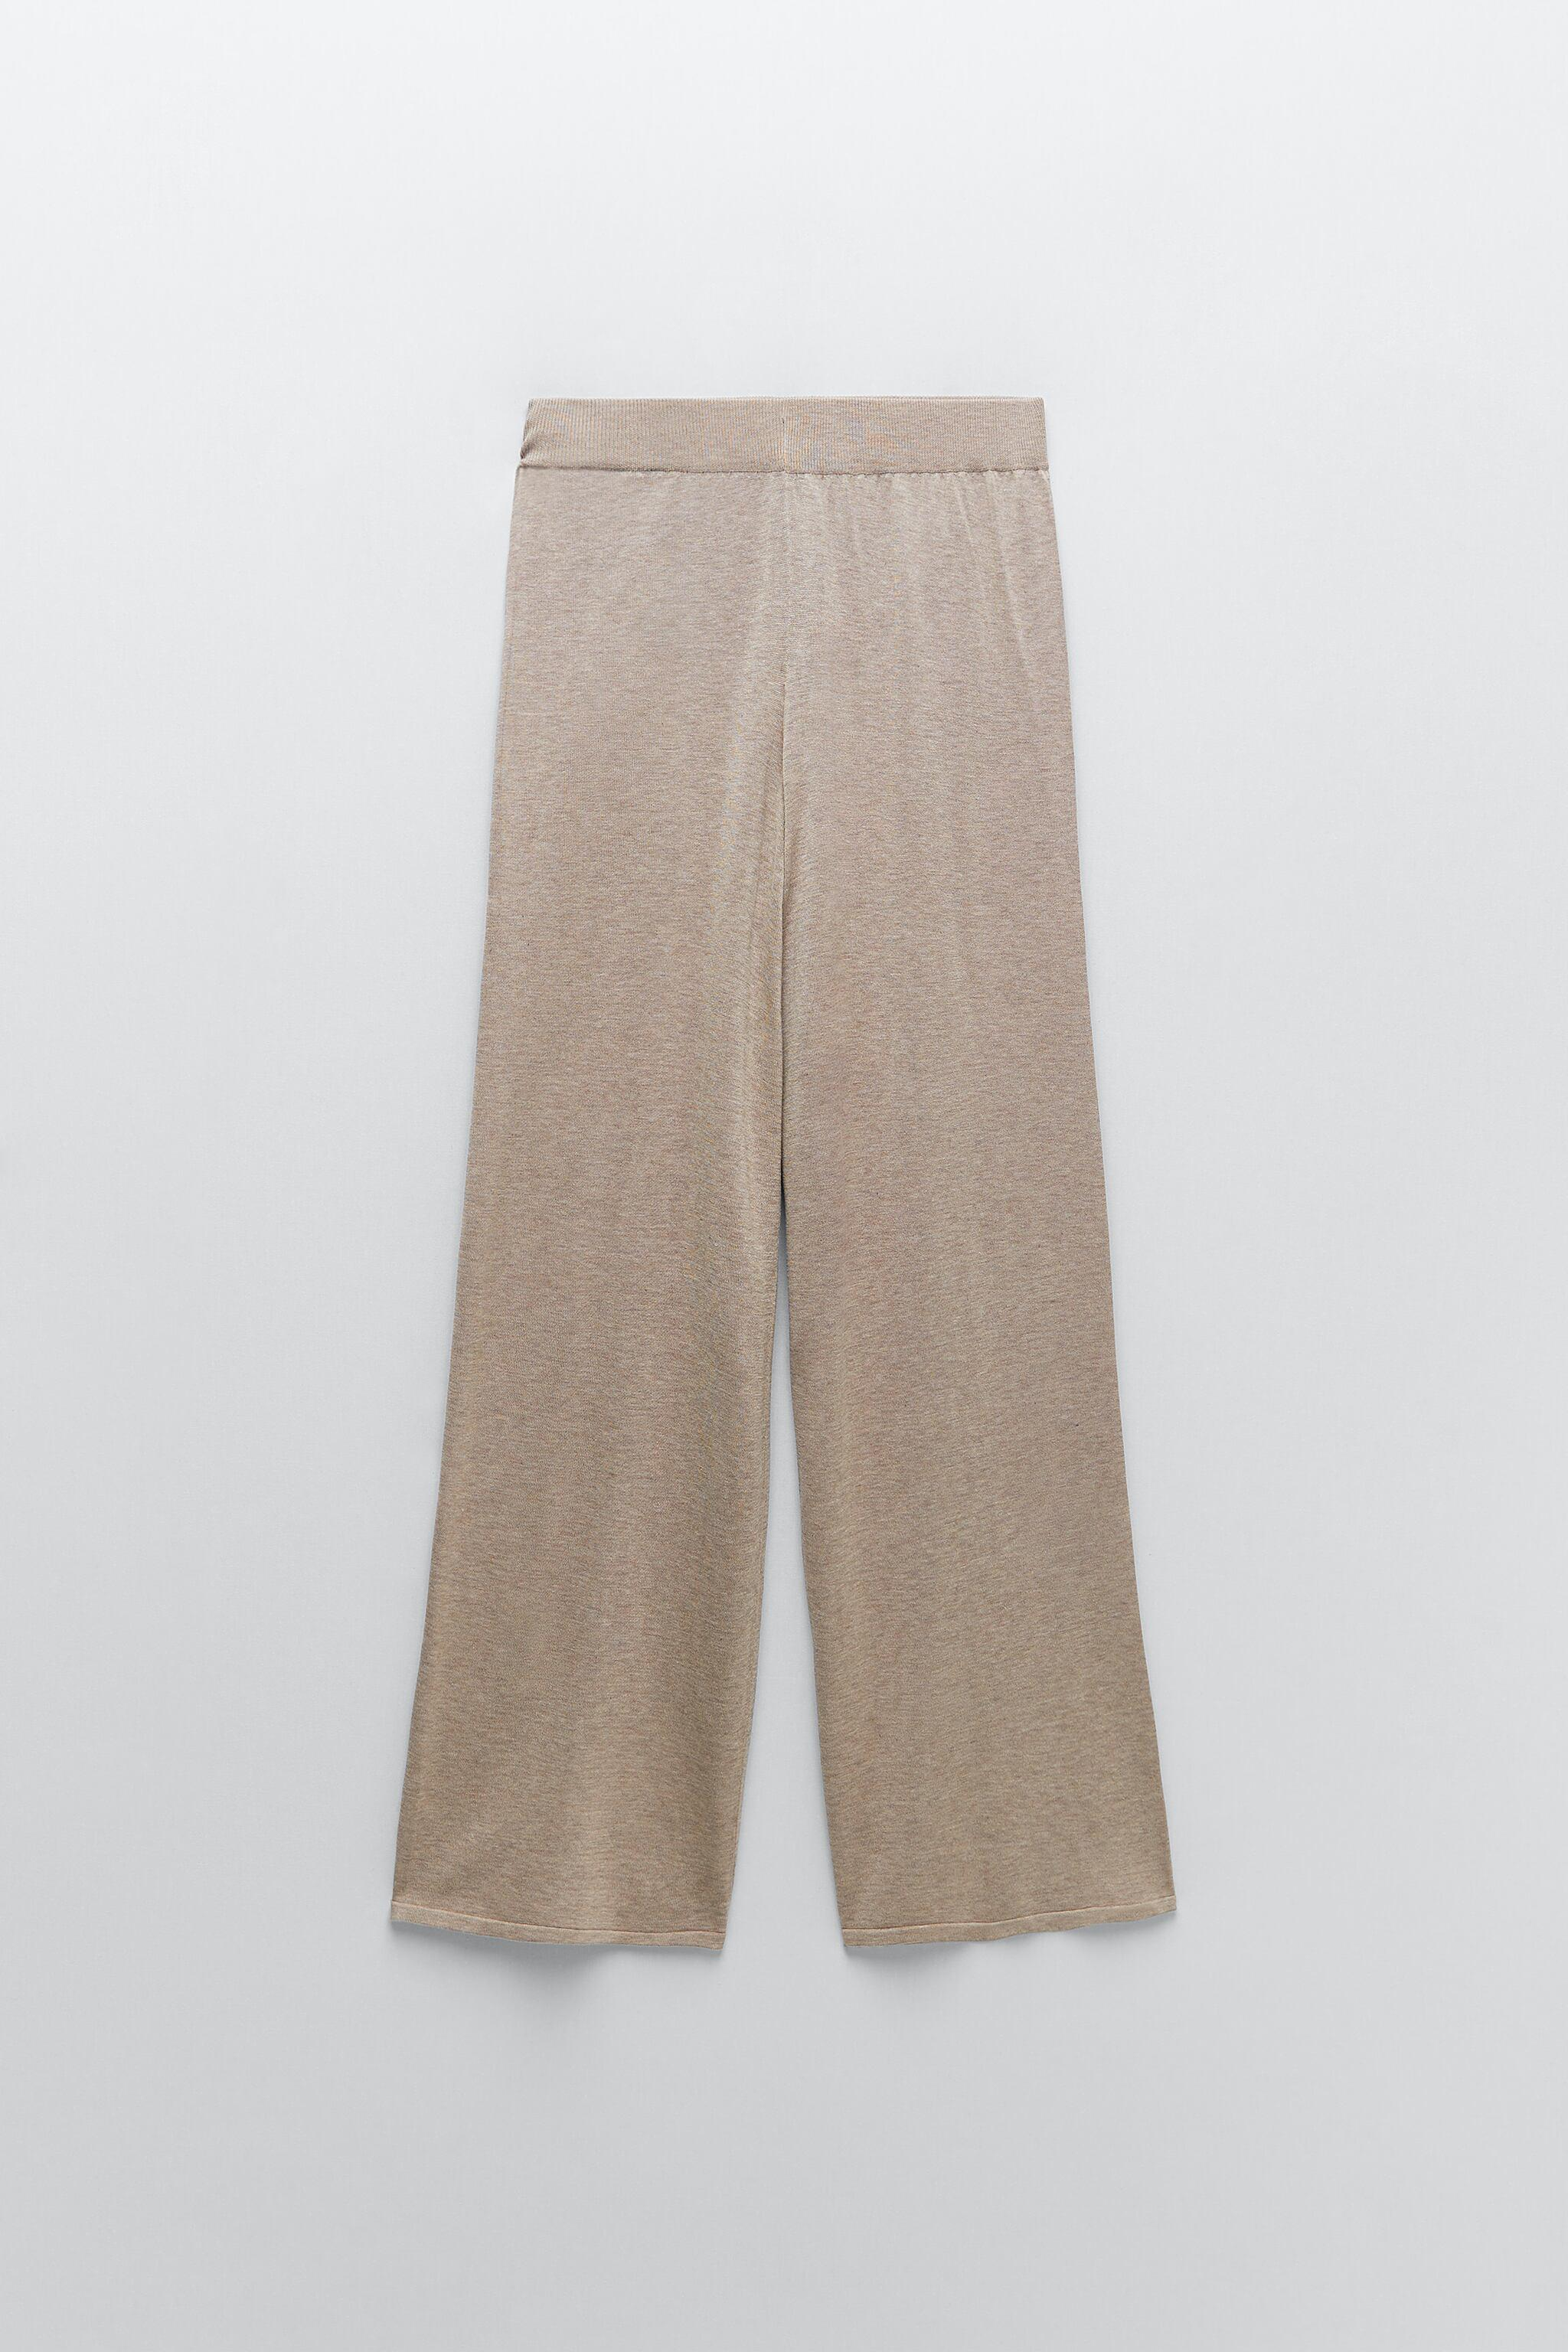 SILK BLEND PANTS LIMITED EDITION 7